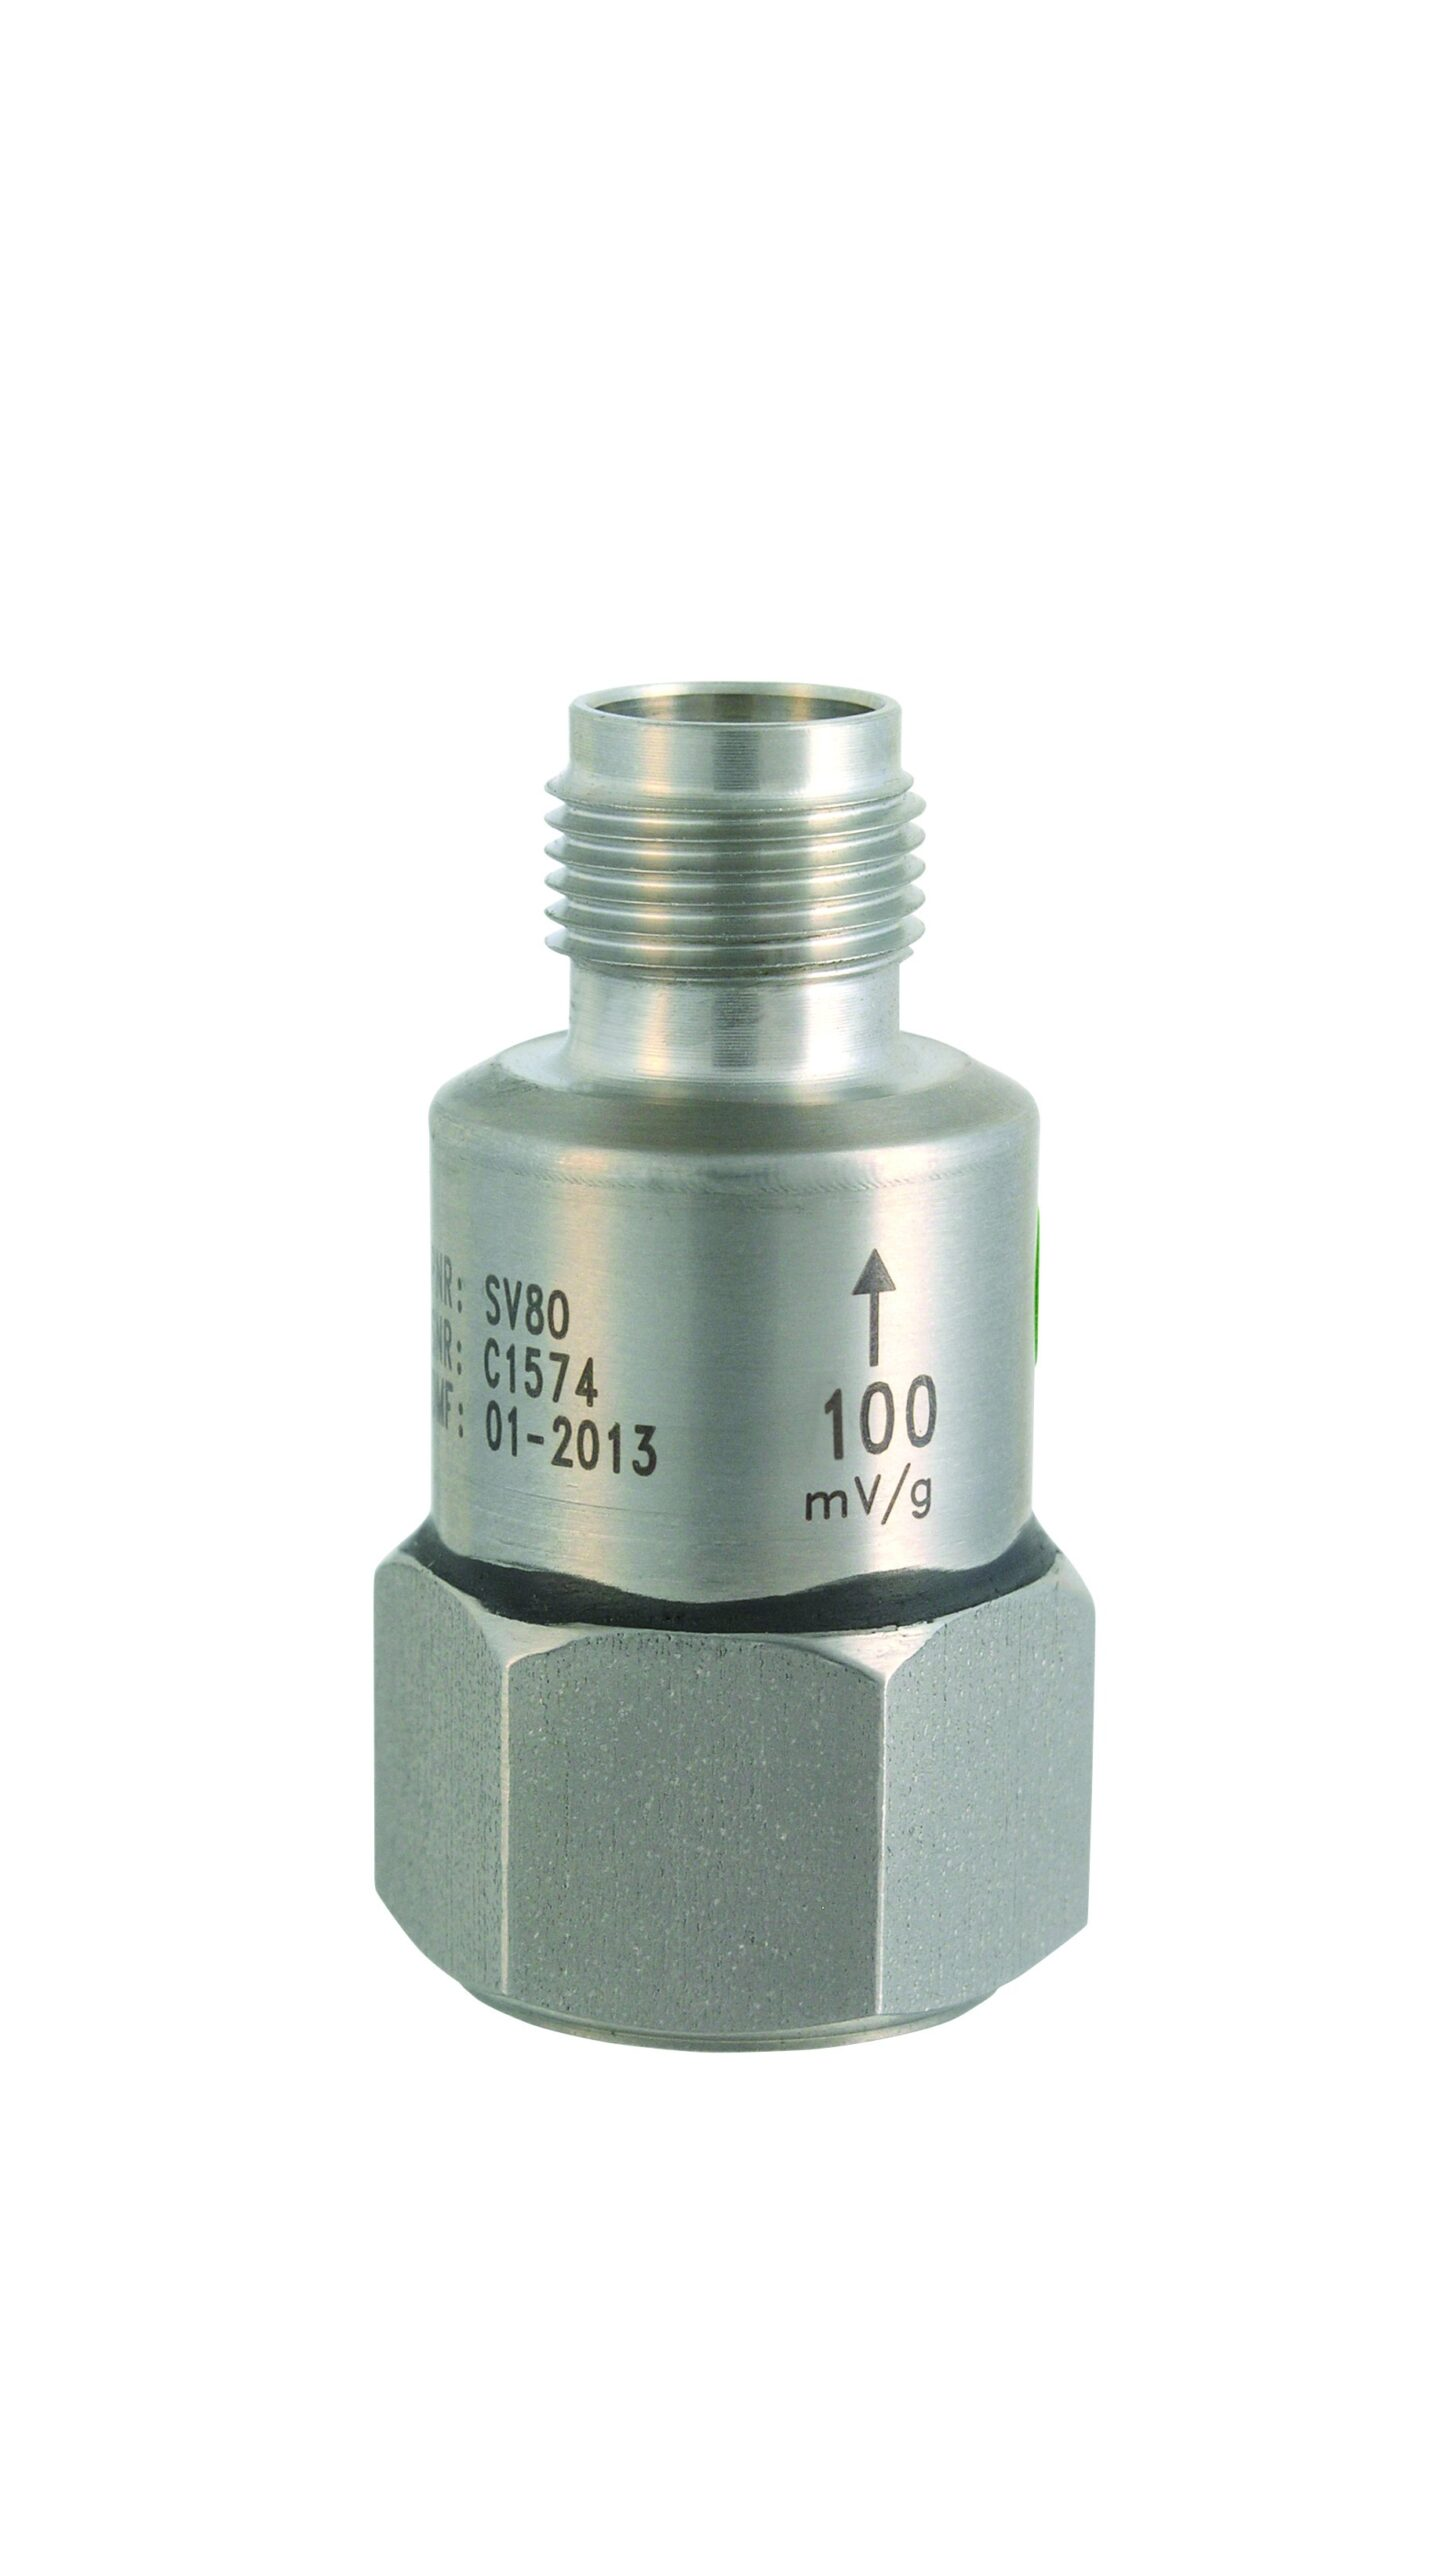 SV 80 General Purpose Accelerometer 100mV/g